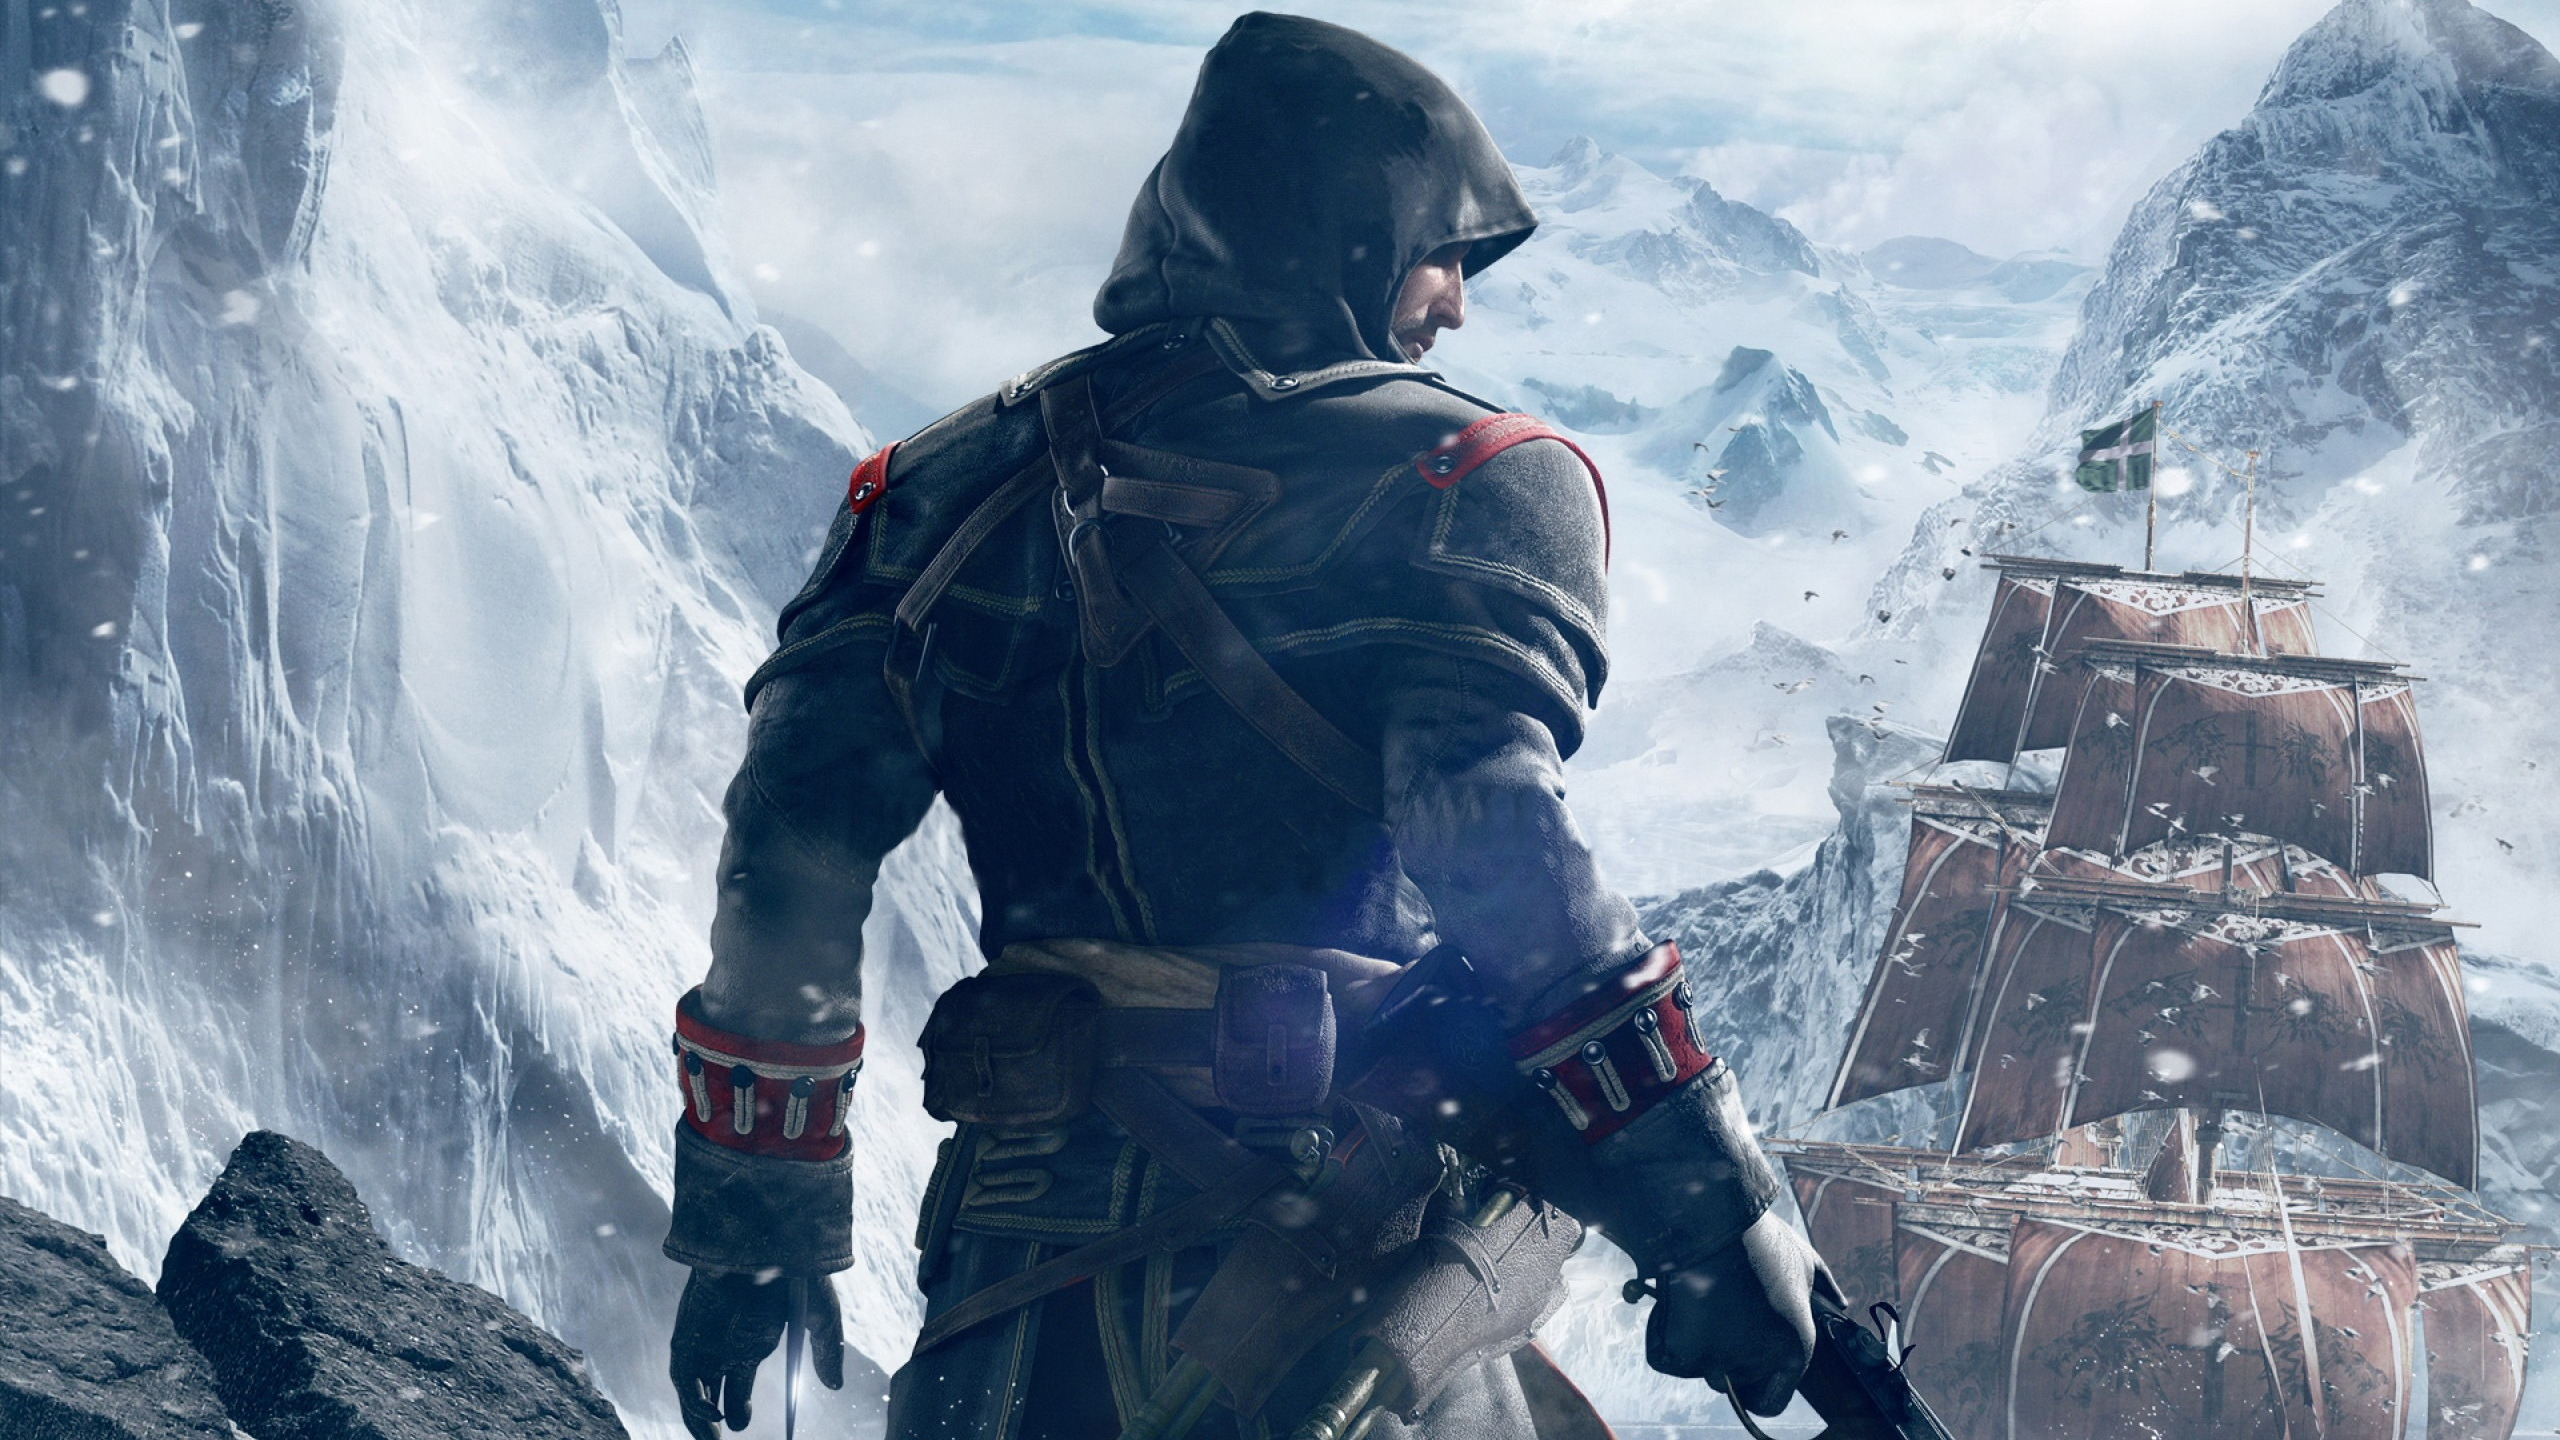 2560x1440 assassin's creed rogue youtube channel cover